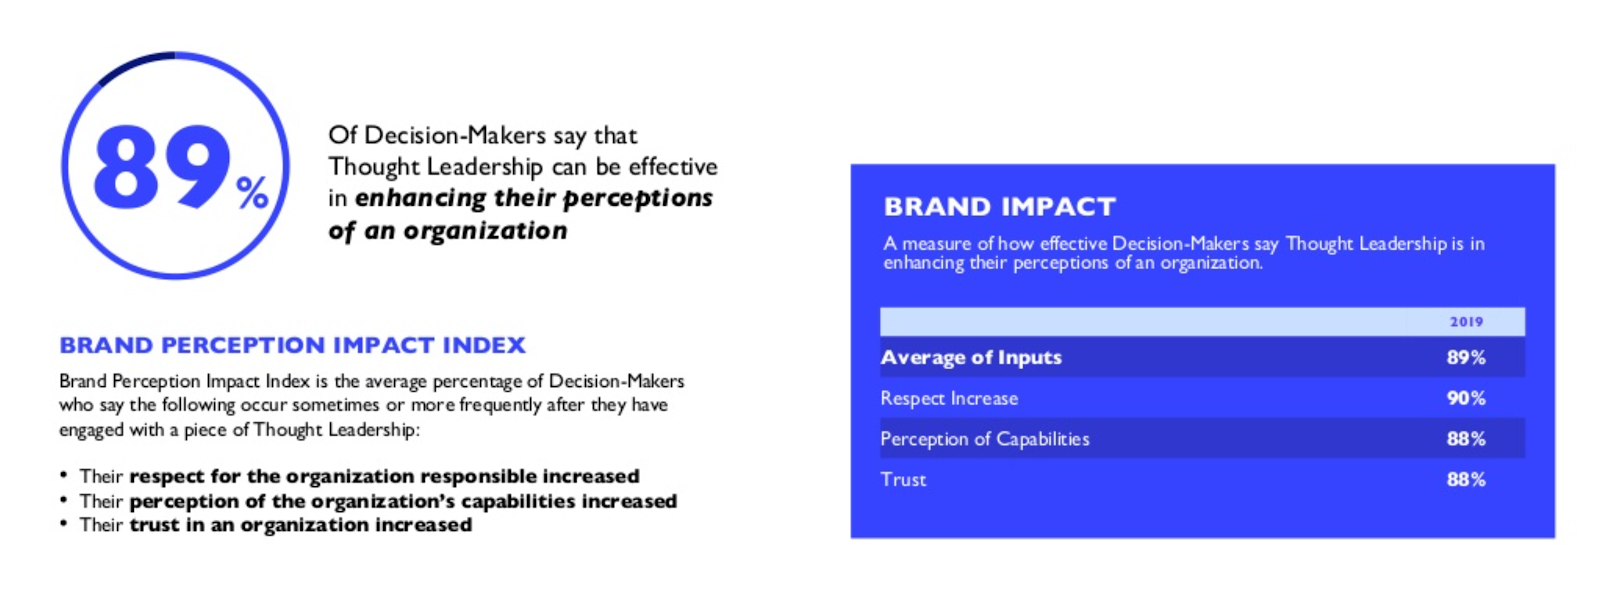 Brand Perception Impact